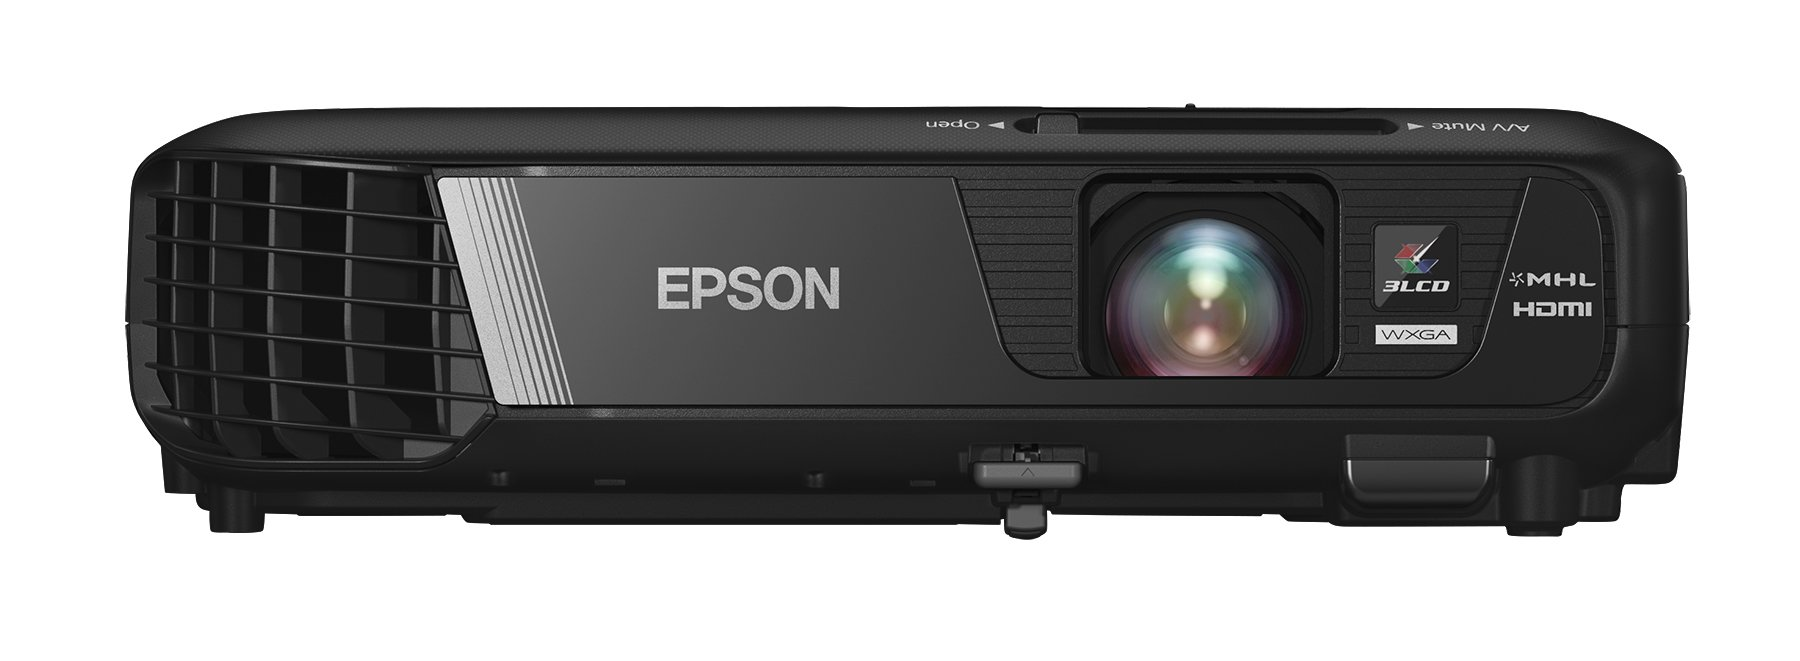 Epson EX7240 Pro WXGA 3LCD Projector Pro Wireless, 3200 Lumens Color Brightness by Epson (Image #2)